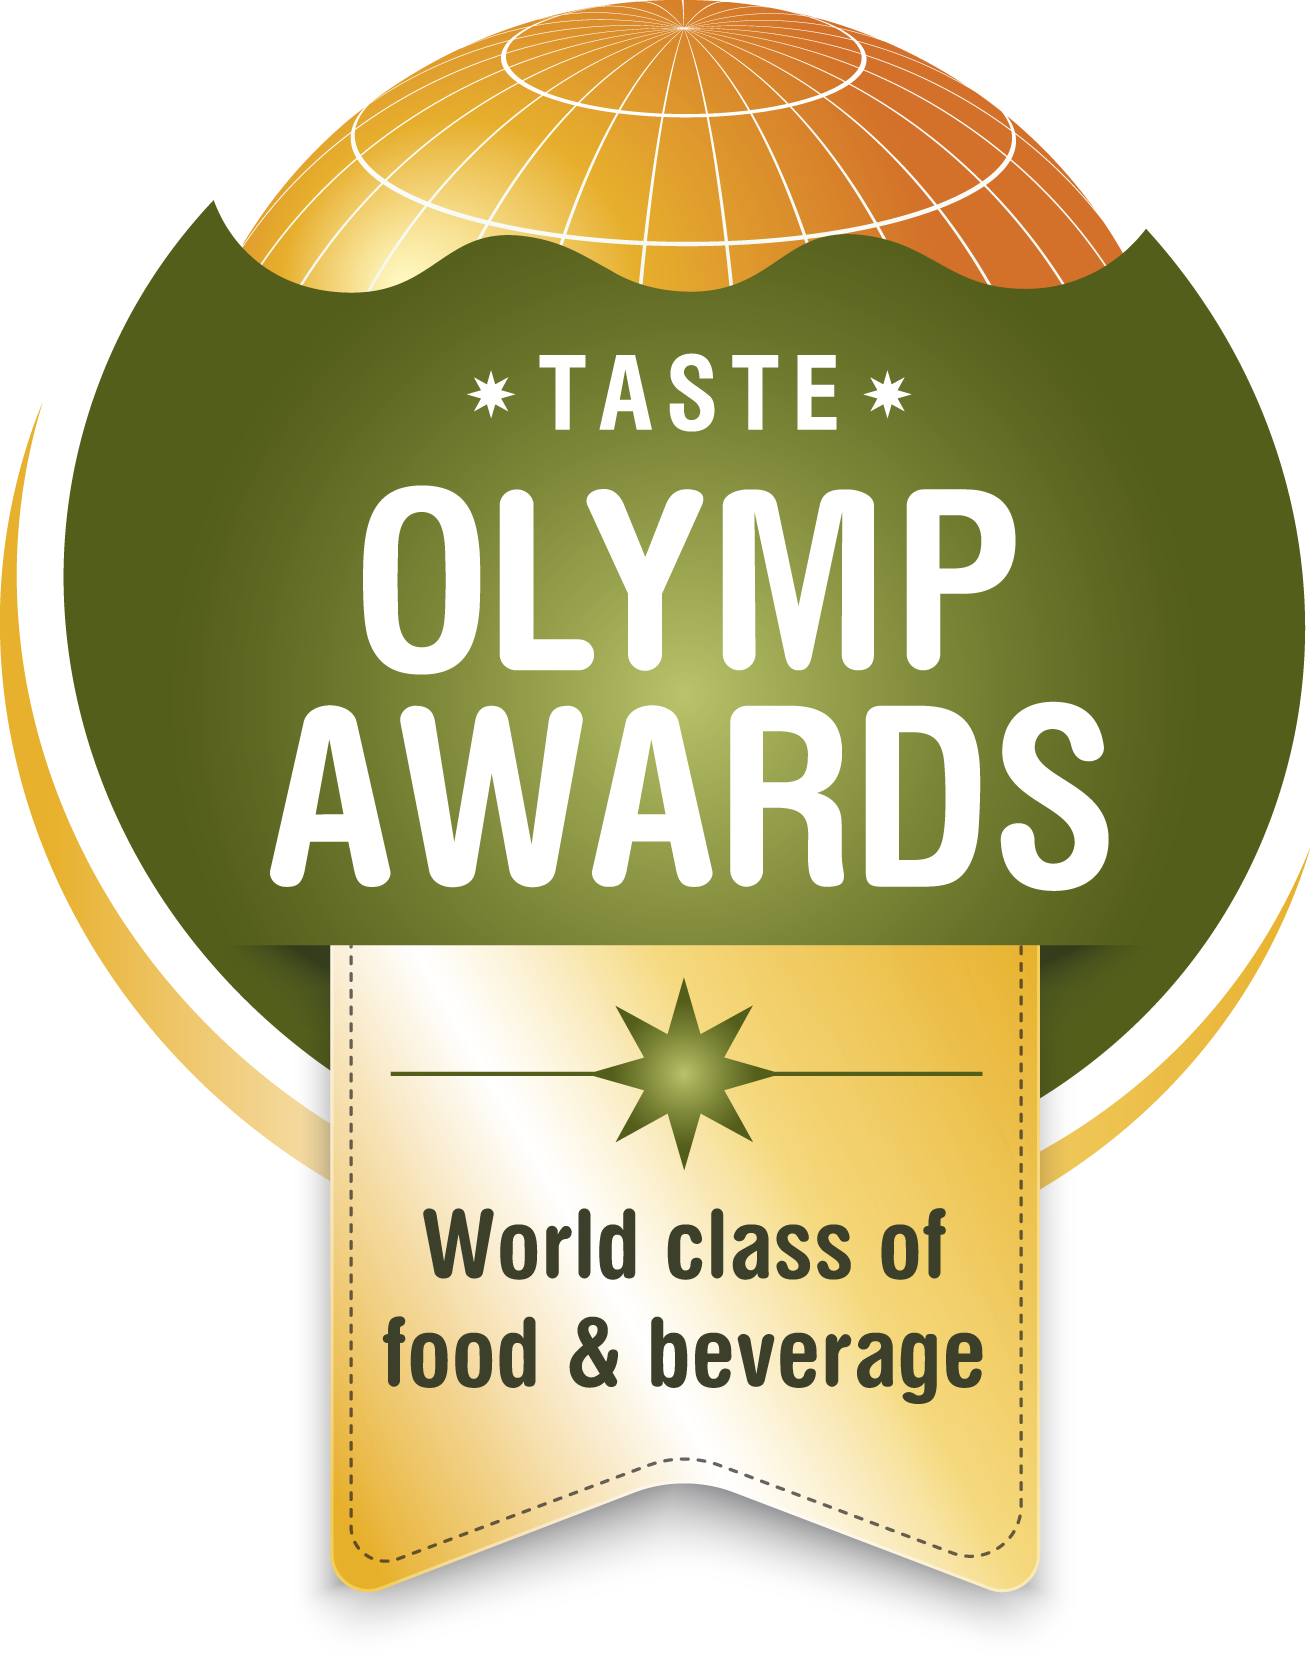 Olymp awards 2016